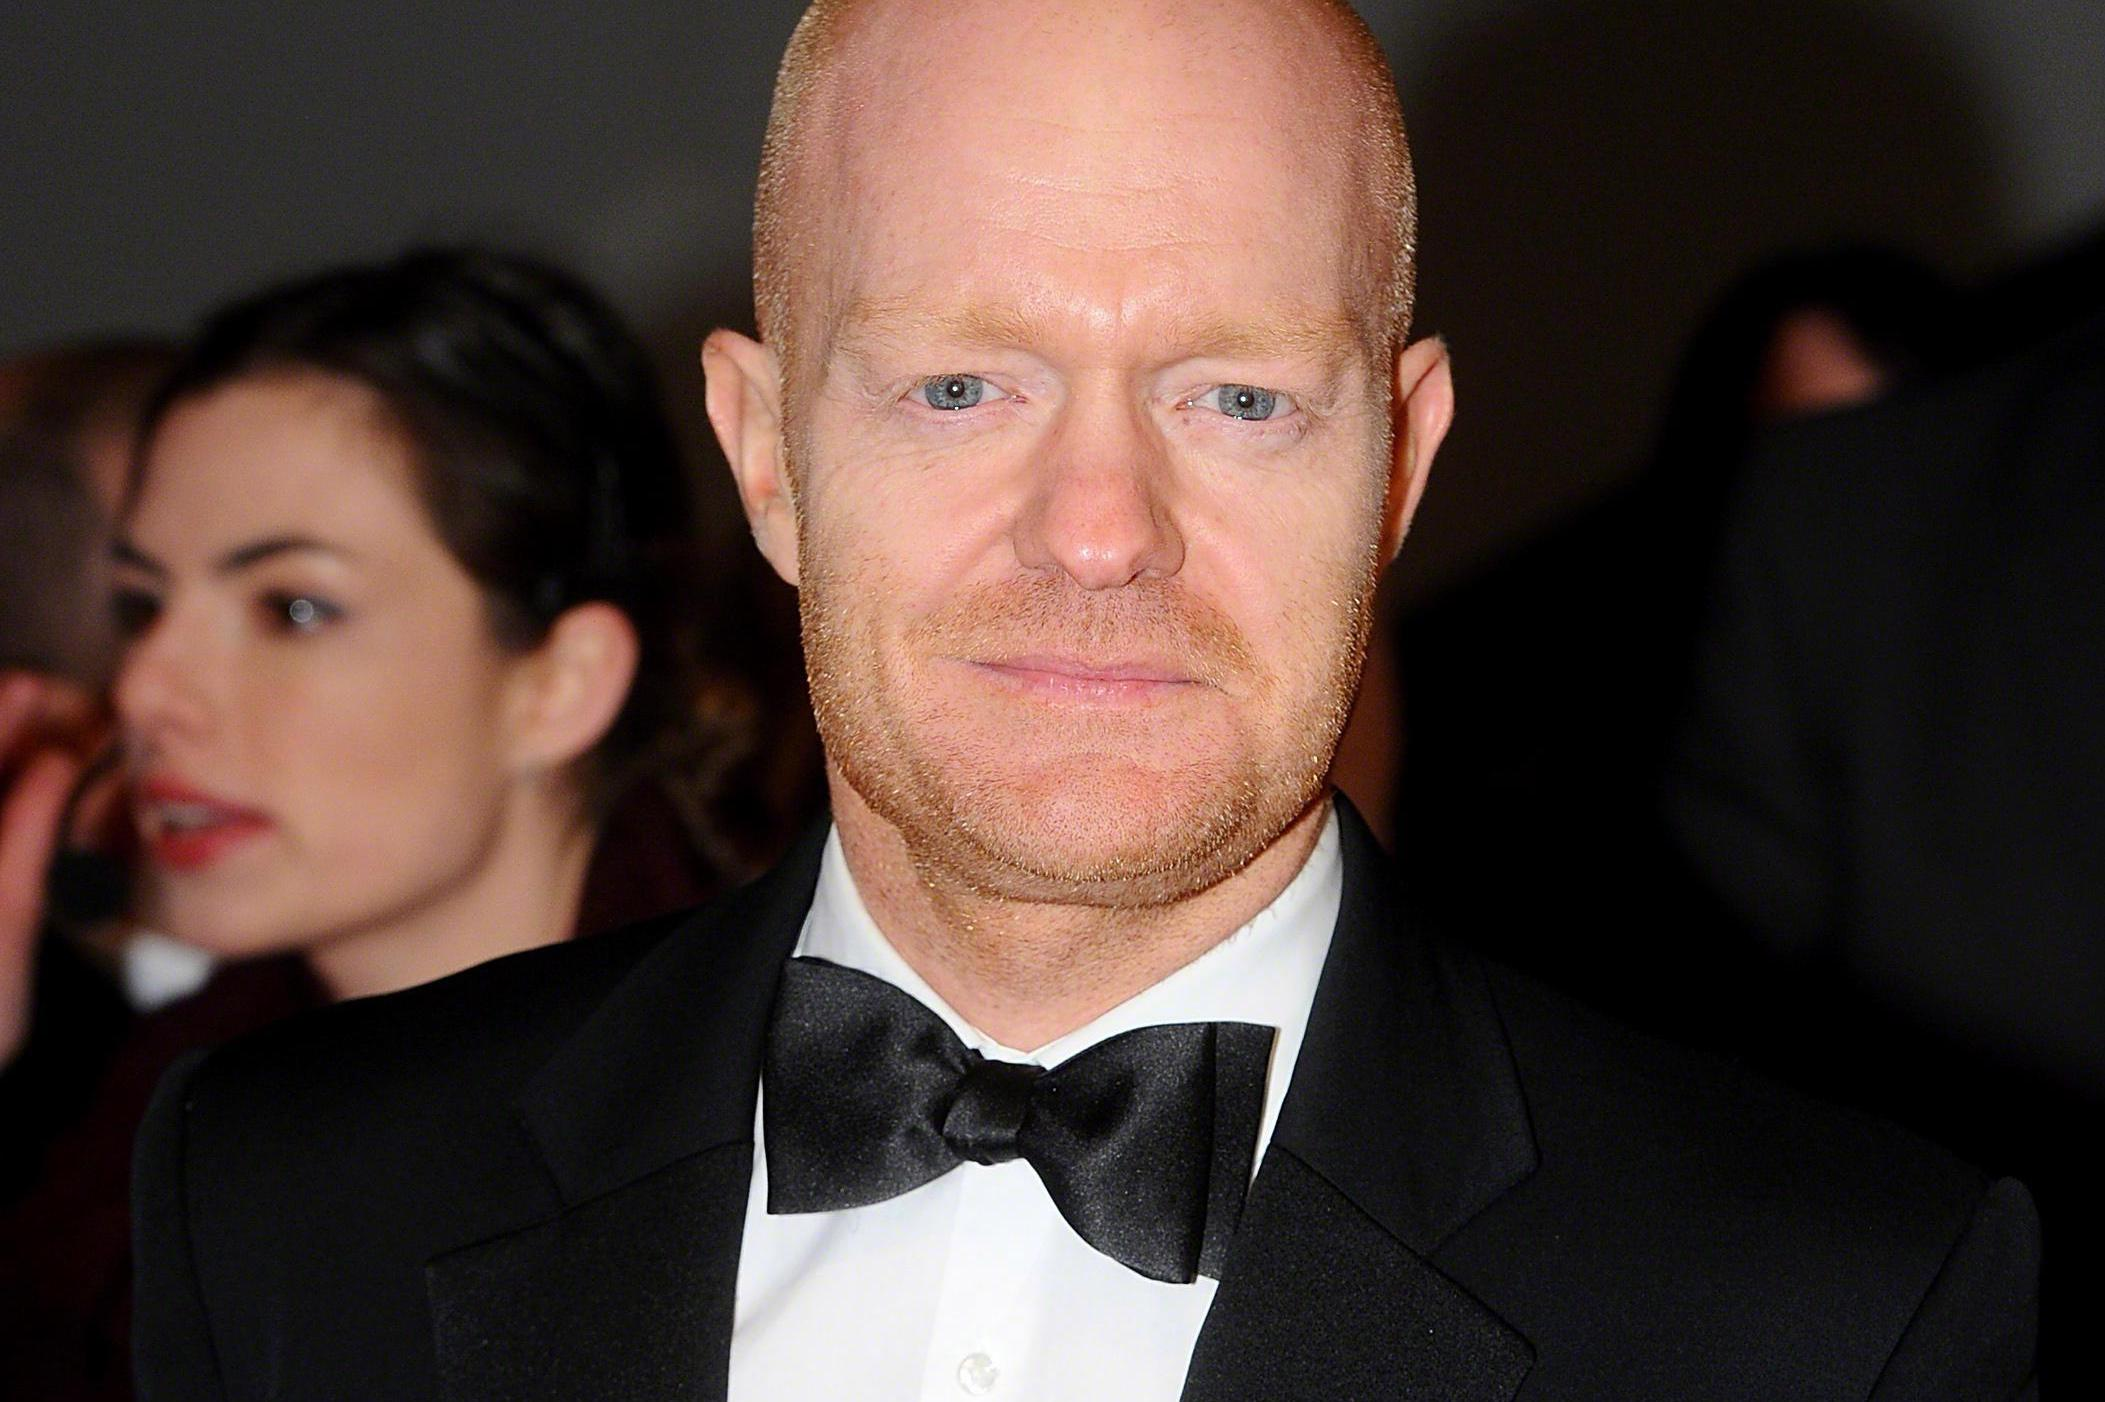 Is Max Branning leaving EastEnders, who plays him and what are his biggest storylines?